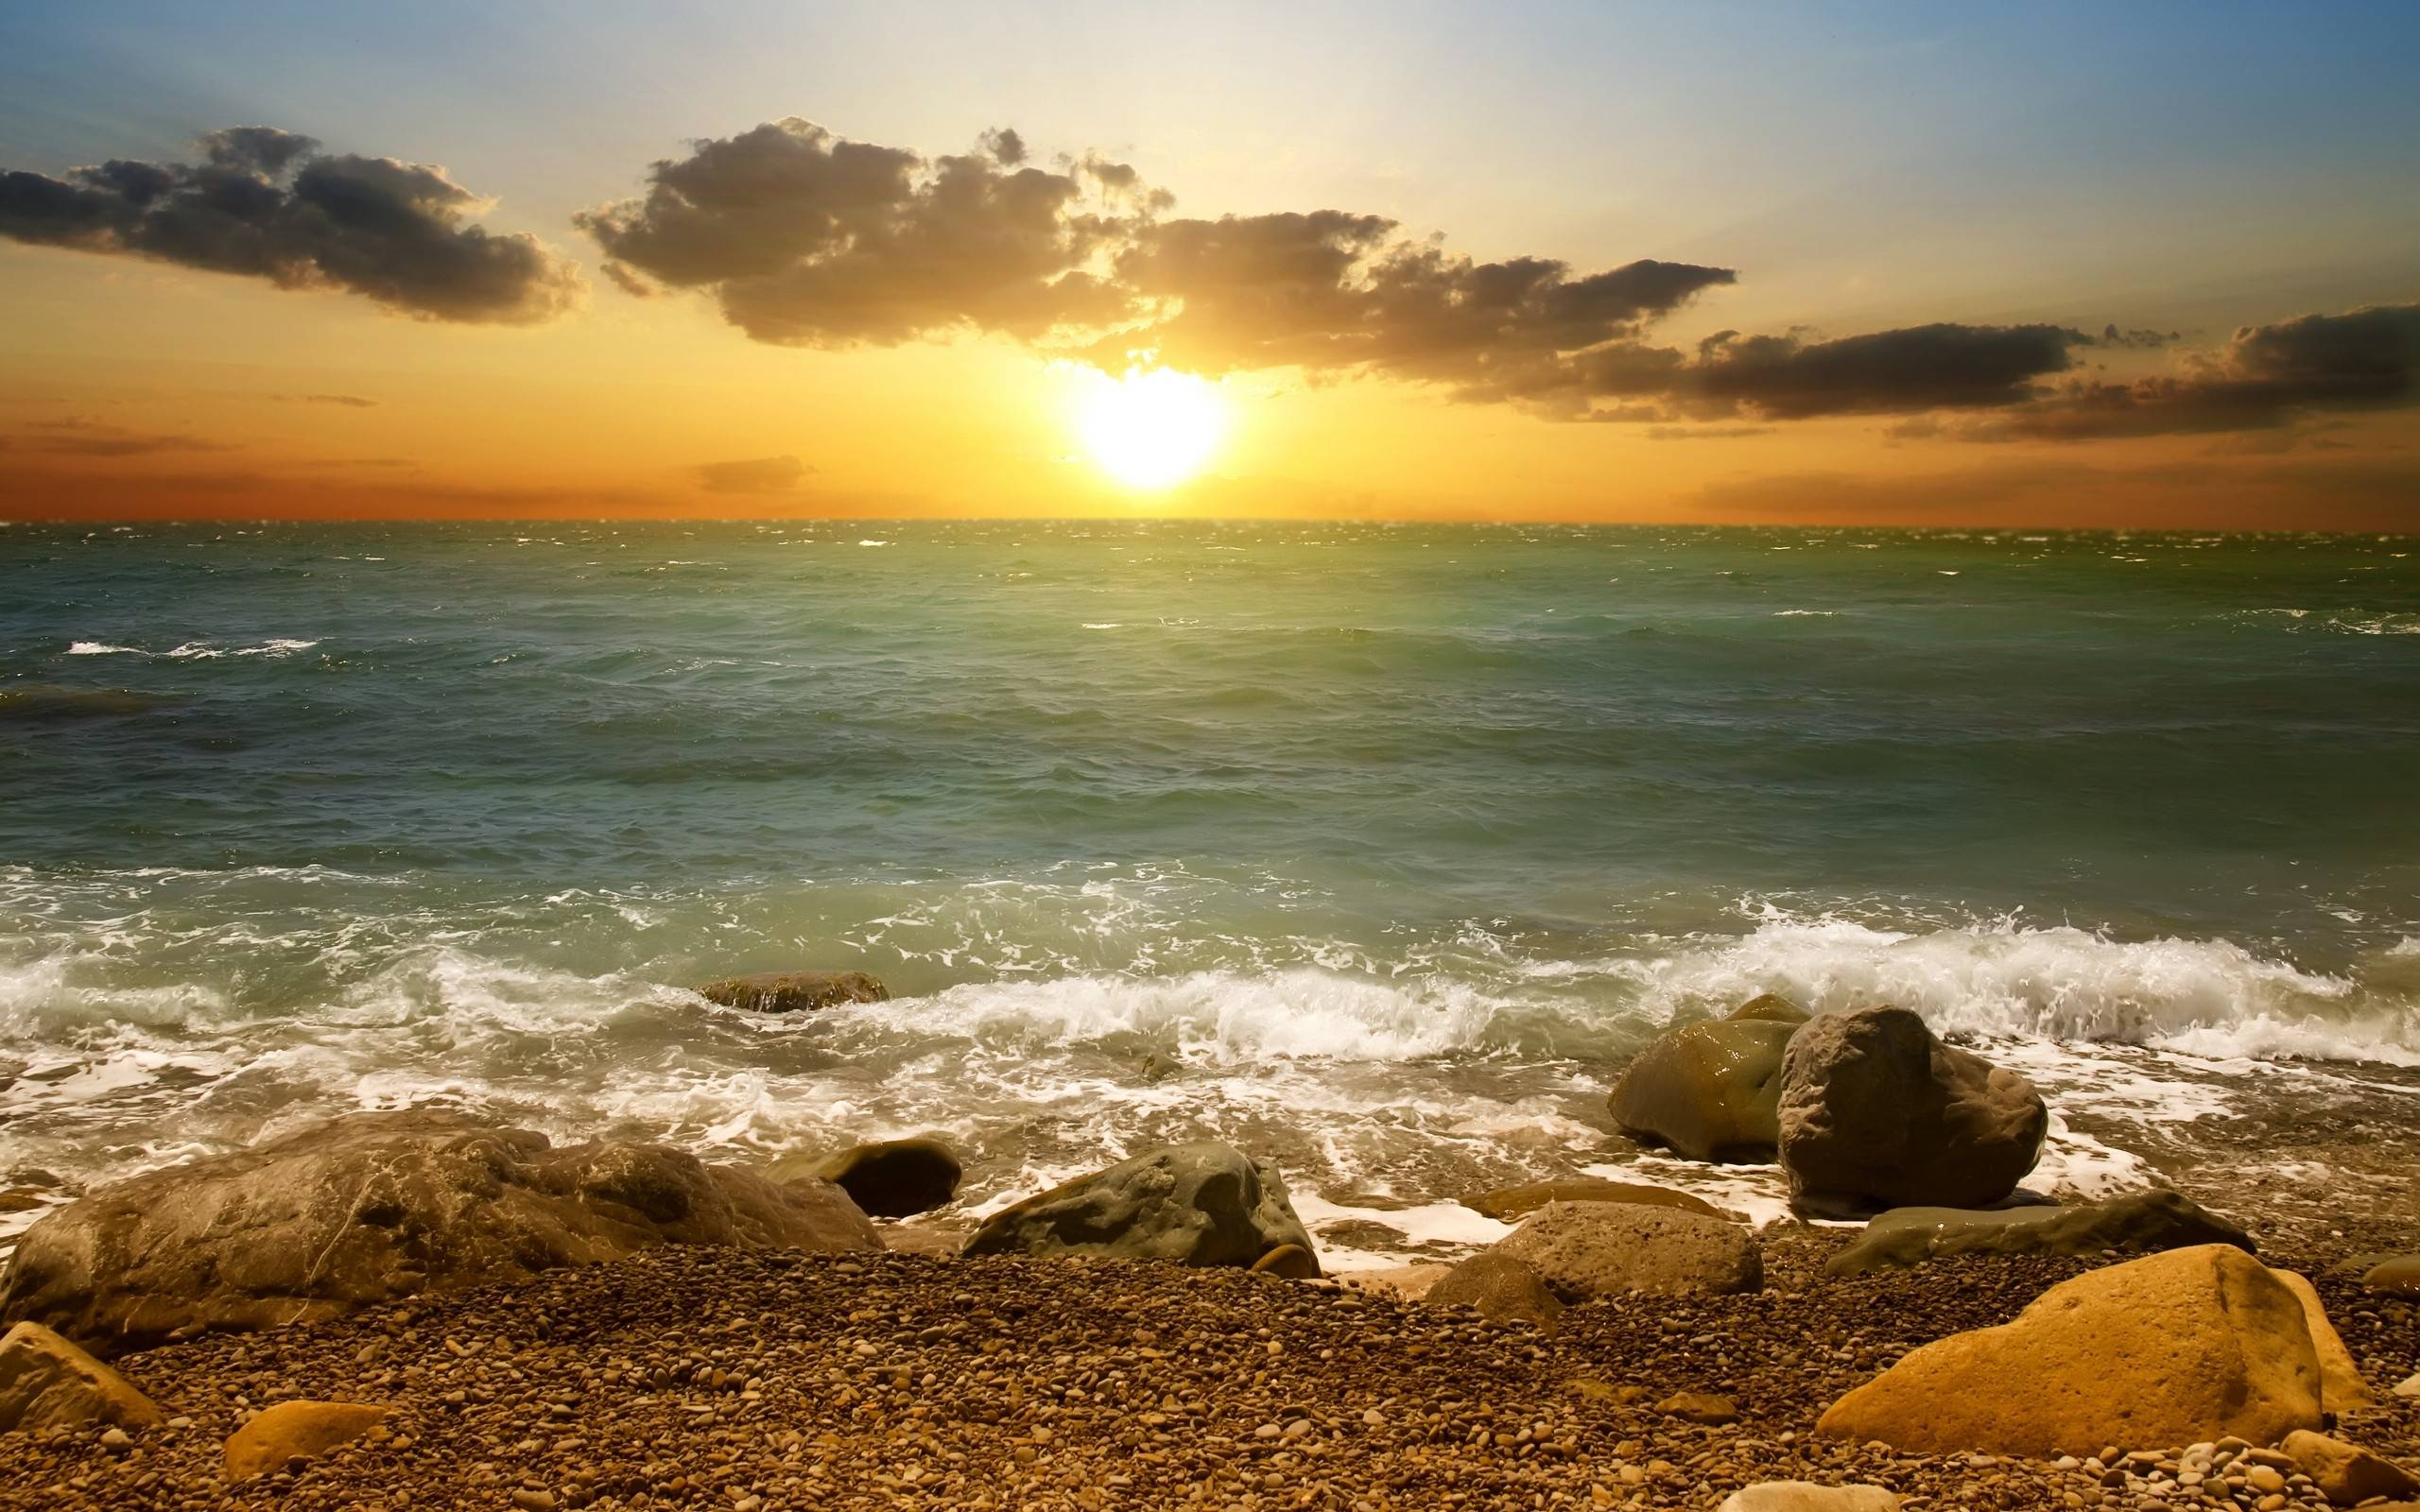 View and Download Sunset Shore Wallpaper ...